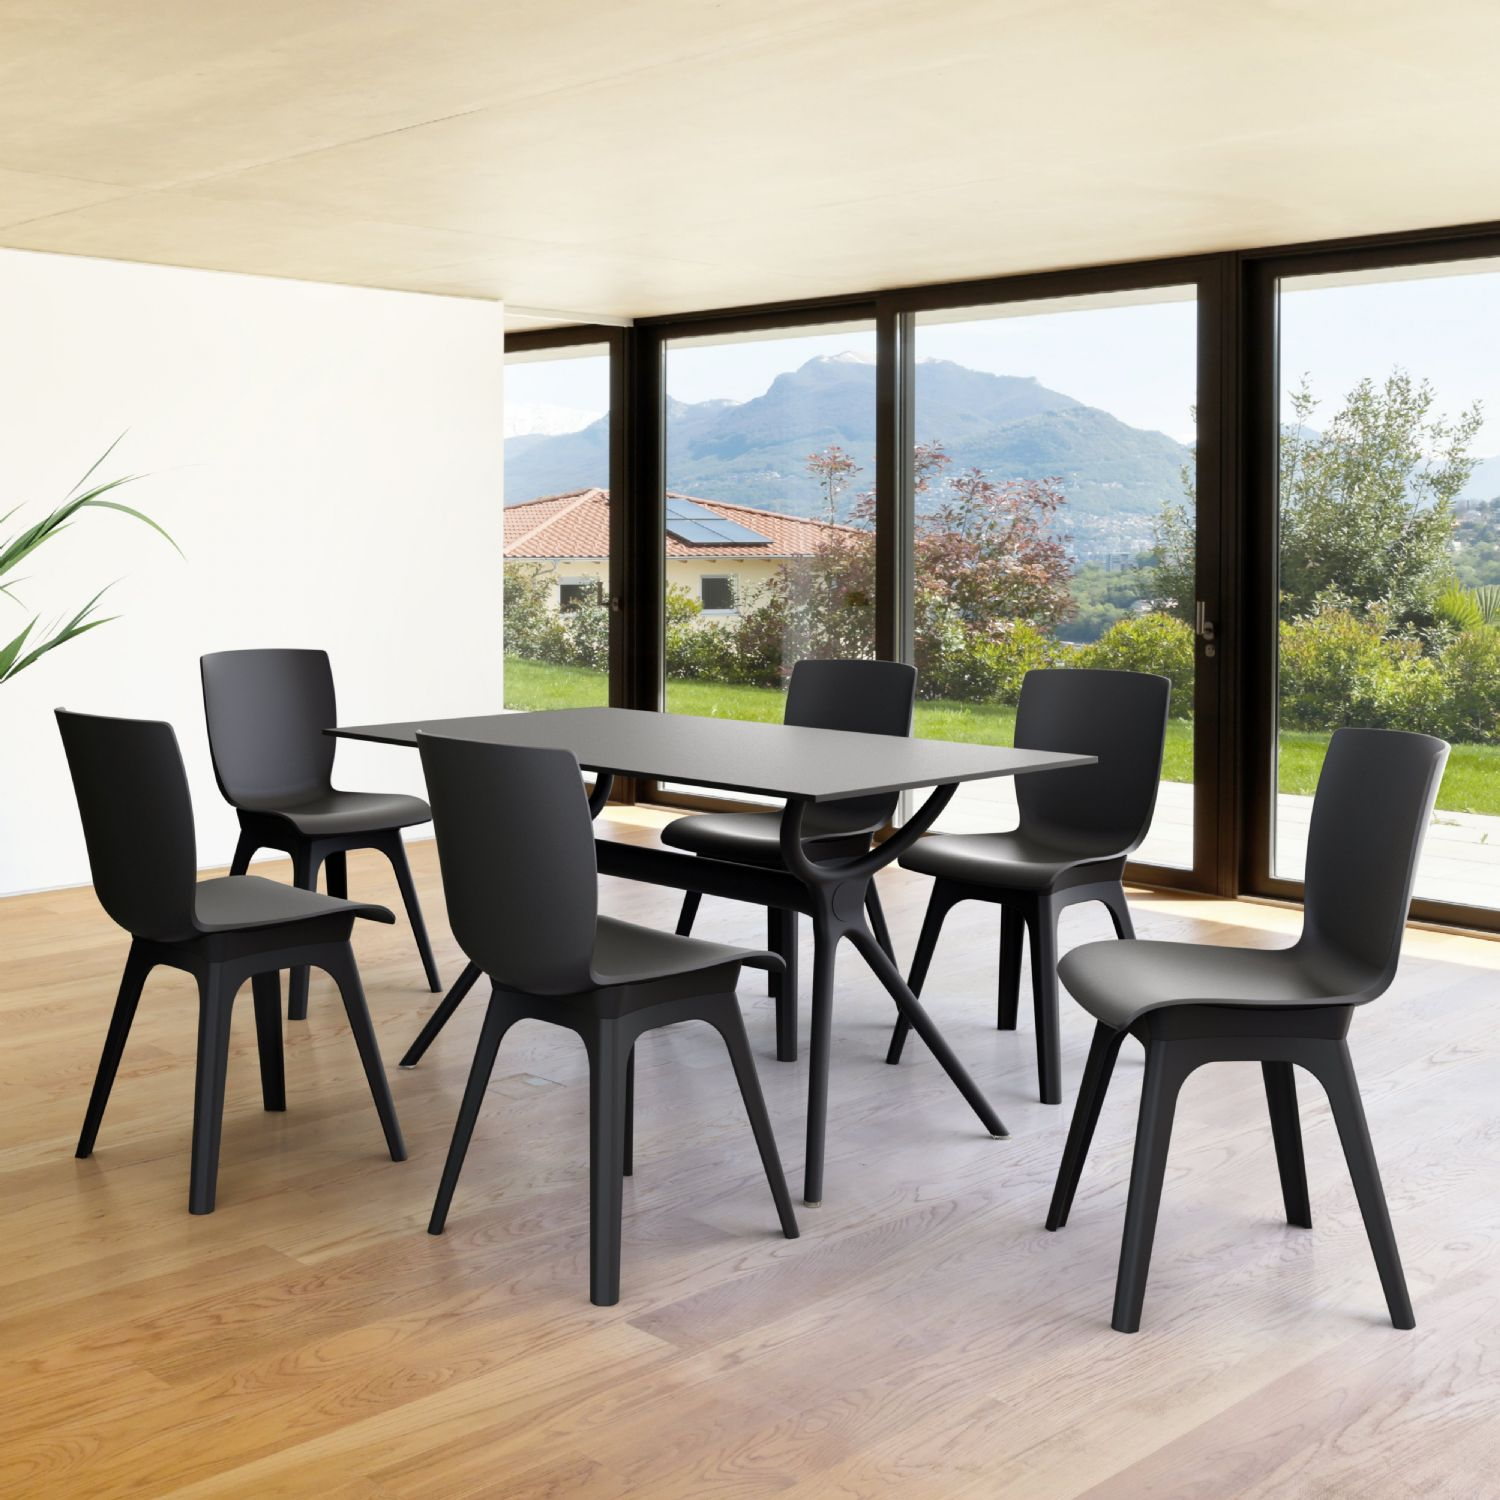 Mio PP Dining Chair Black ISP094-BLA-BLA - 1